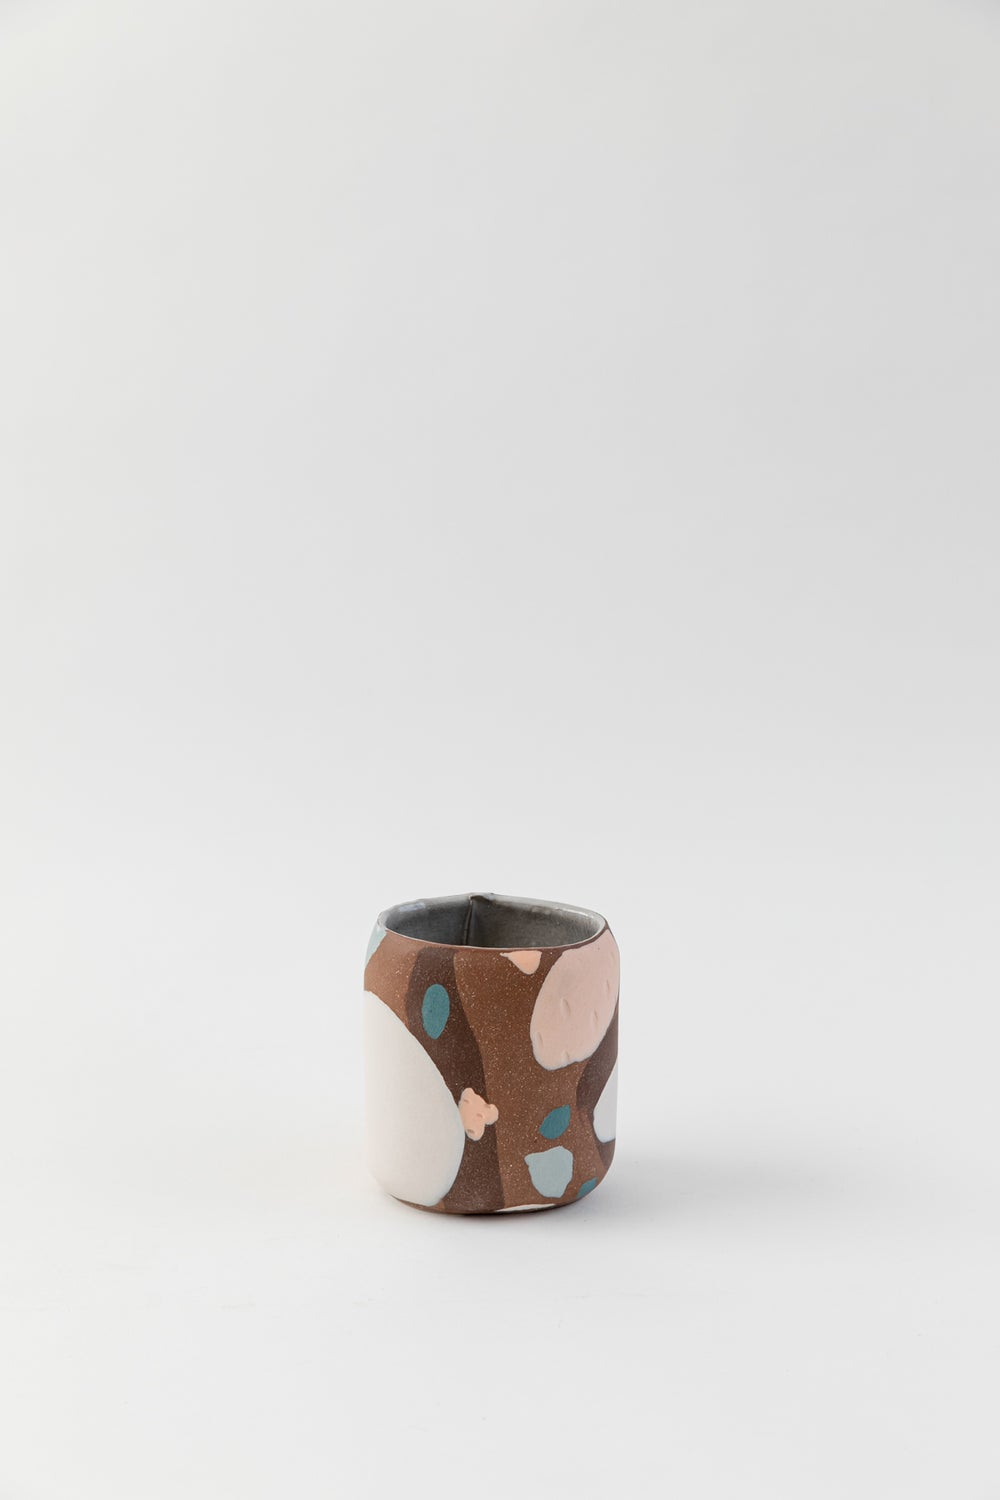 Image of Short Oval Inlay Vase - Red Mesa